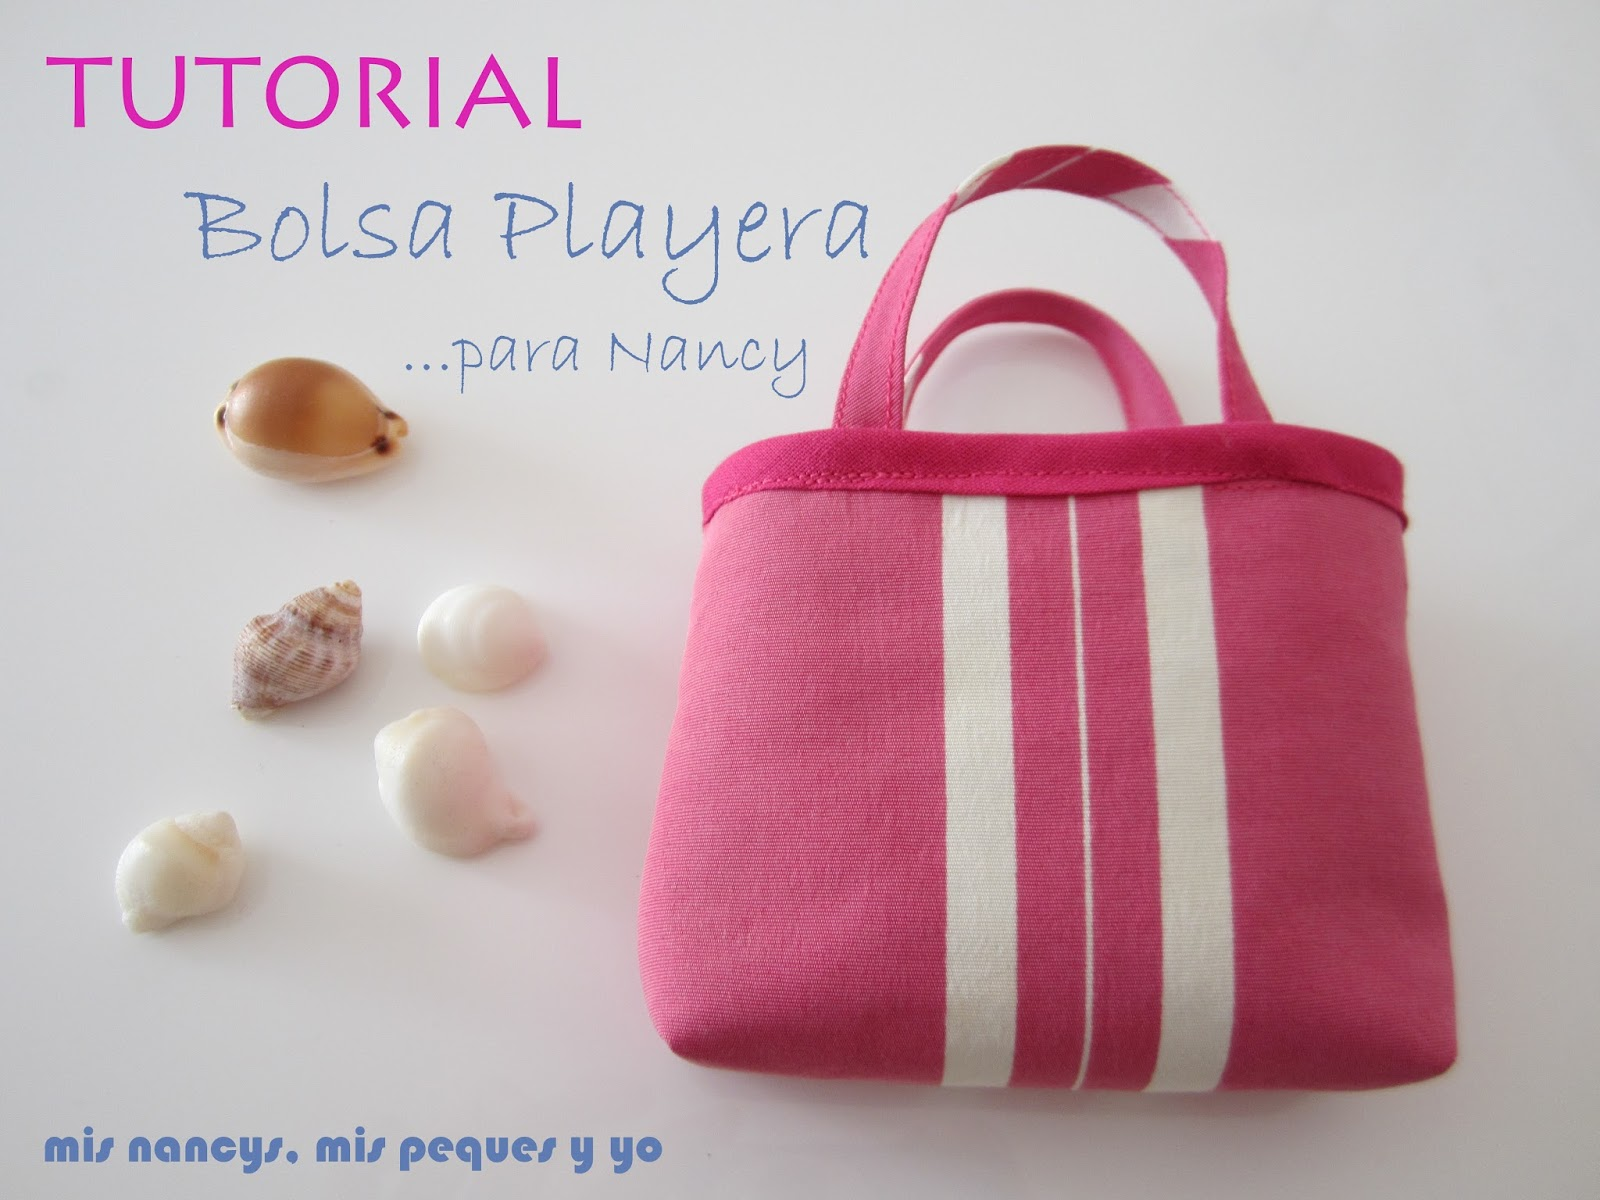 Tutorial Bolsa Playera para Nancy